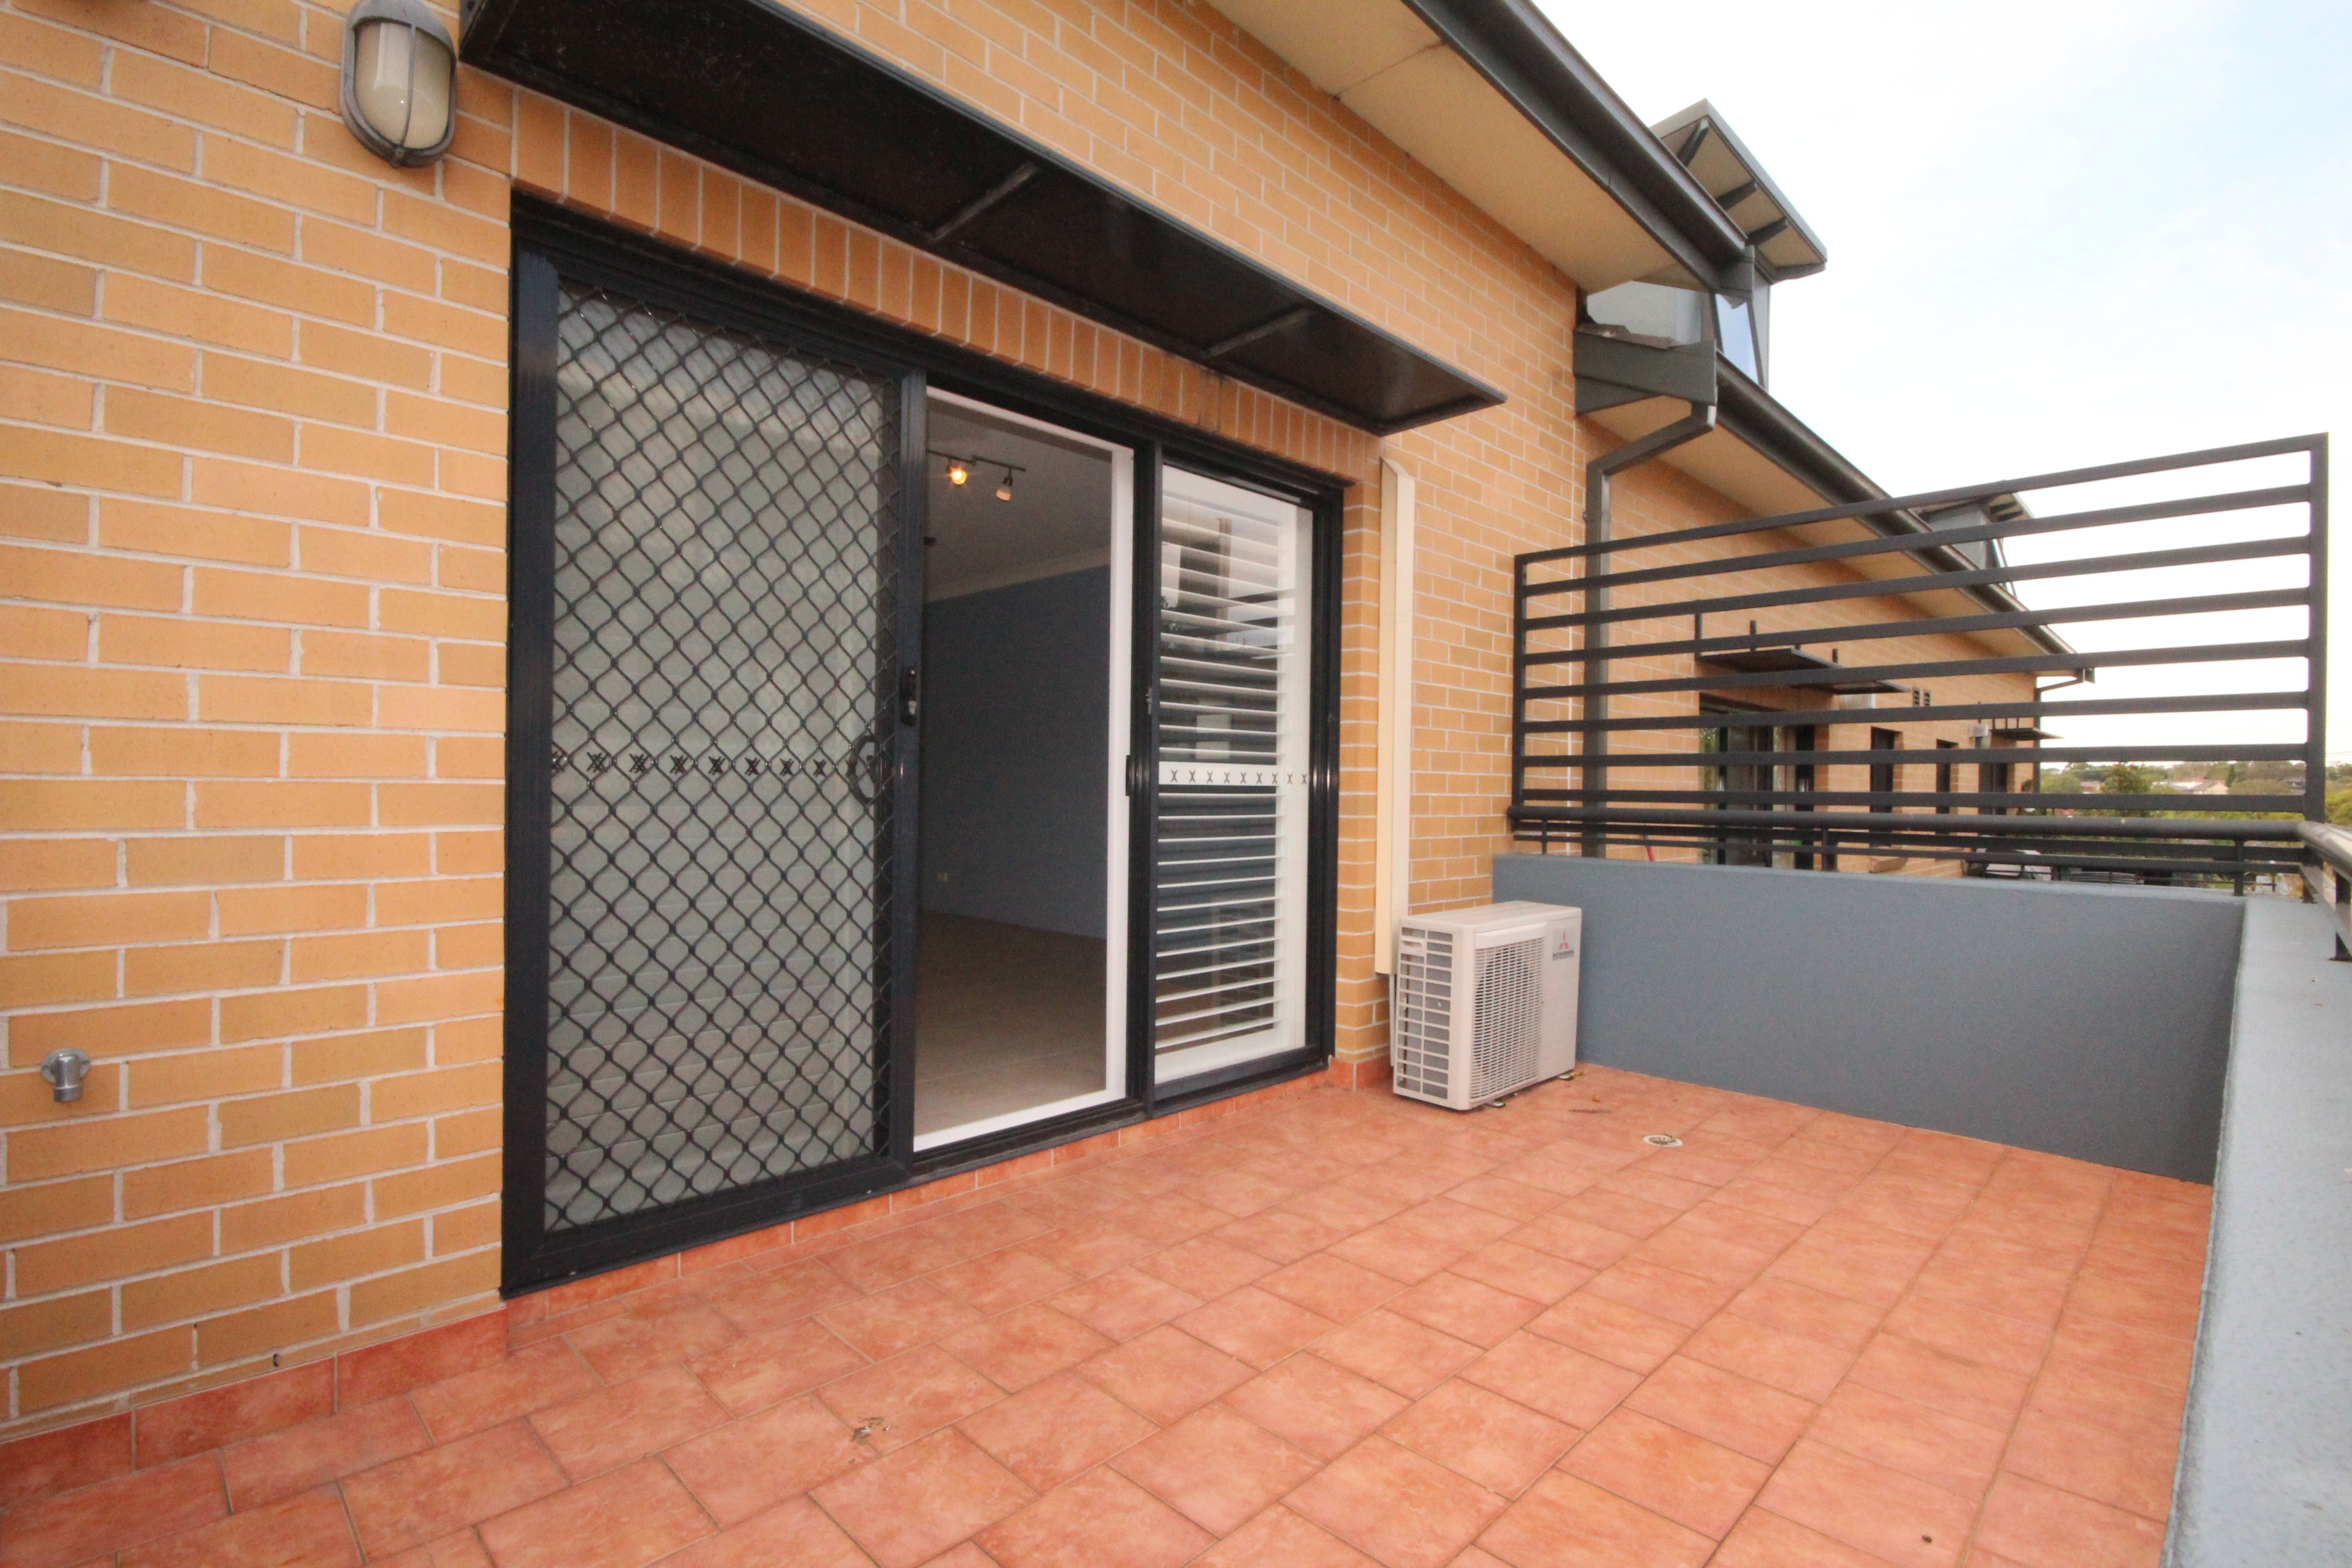 12/9 Anselm Street, Strathfield South NSW 2136